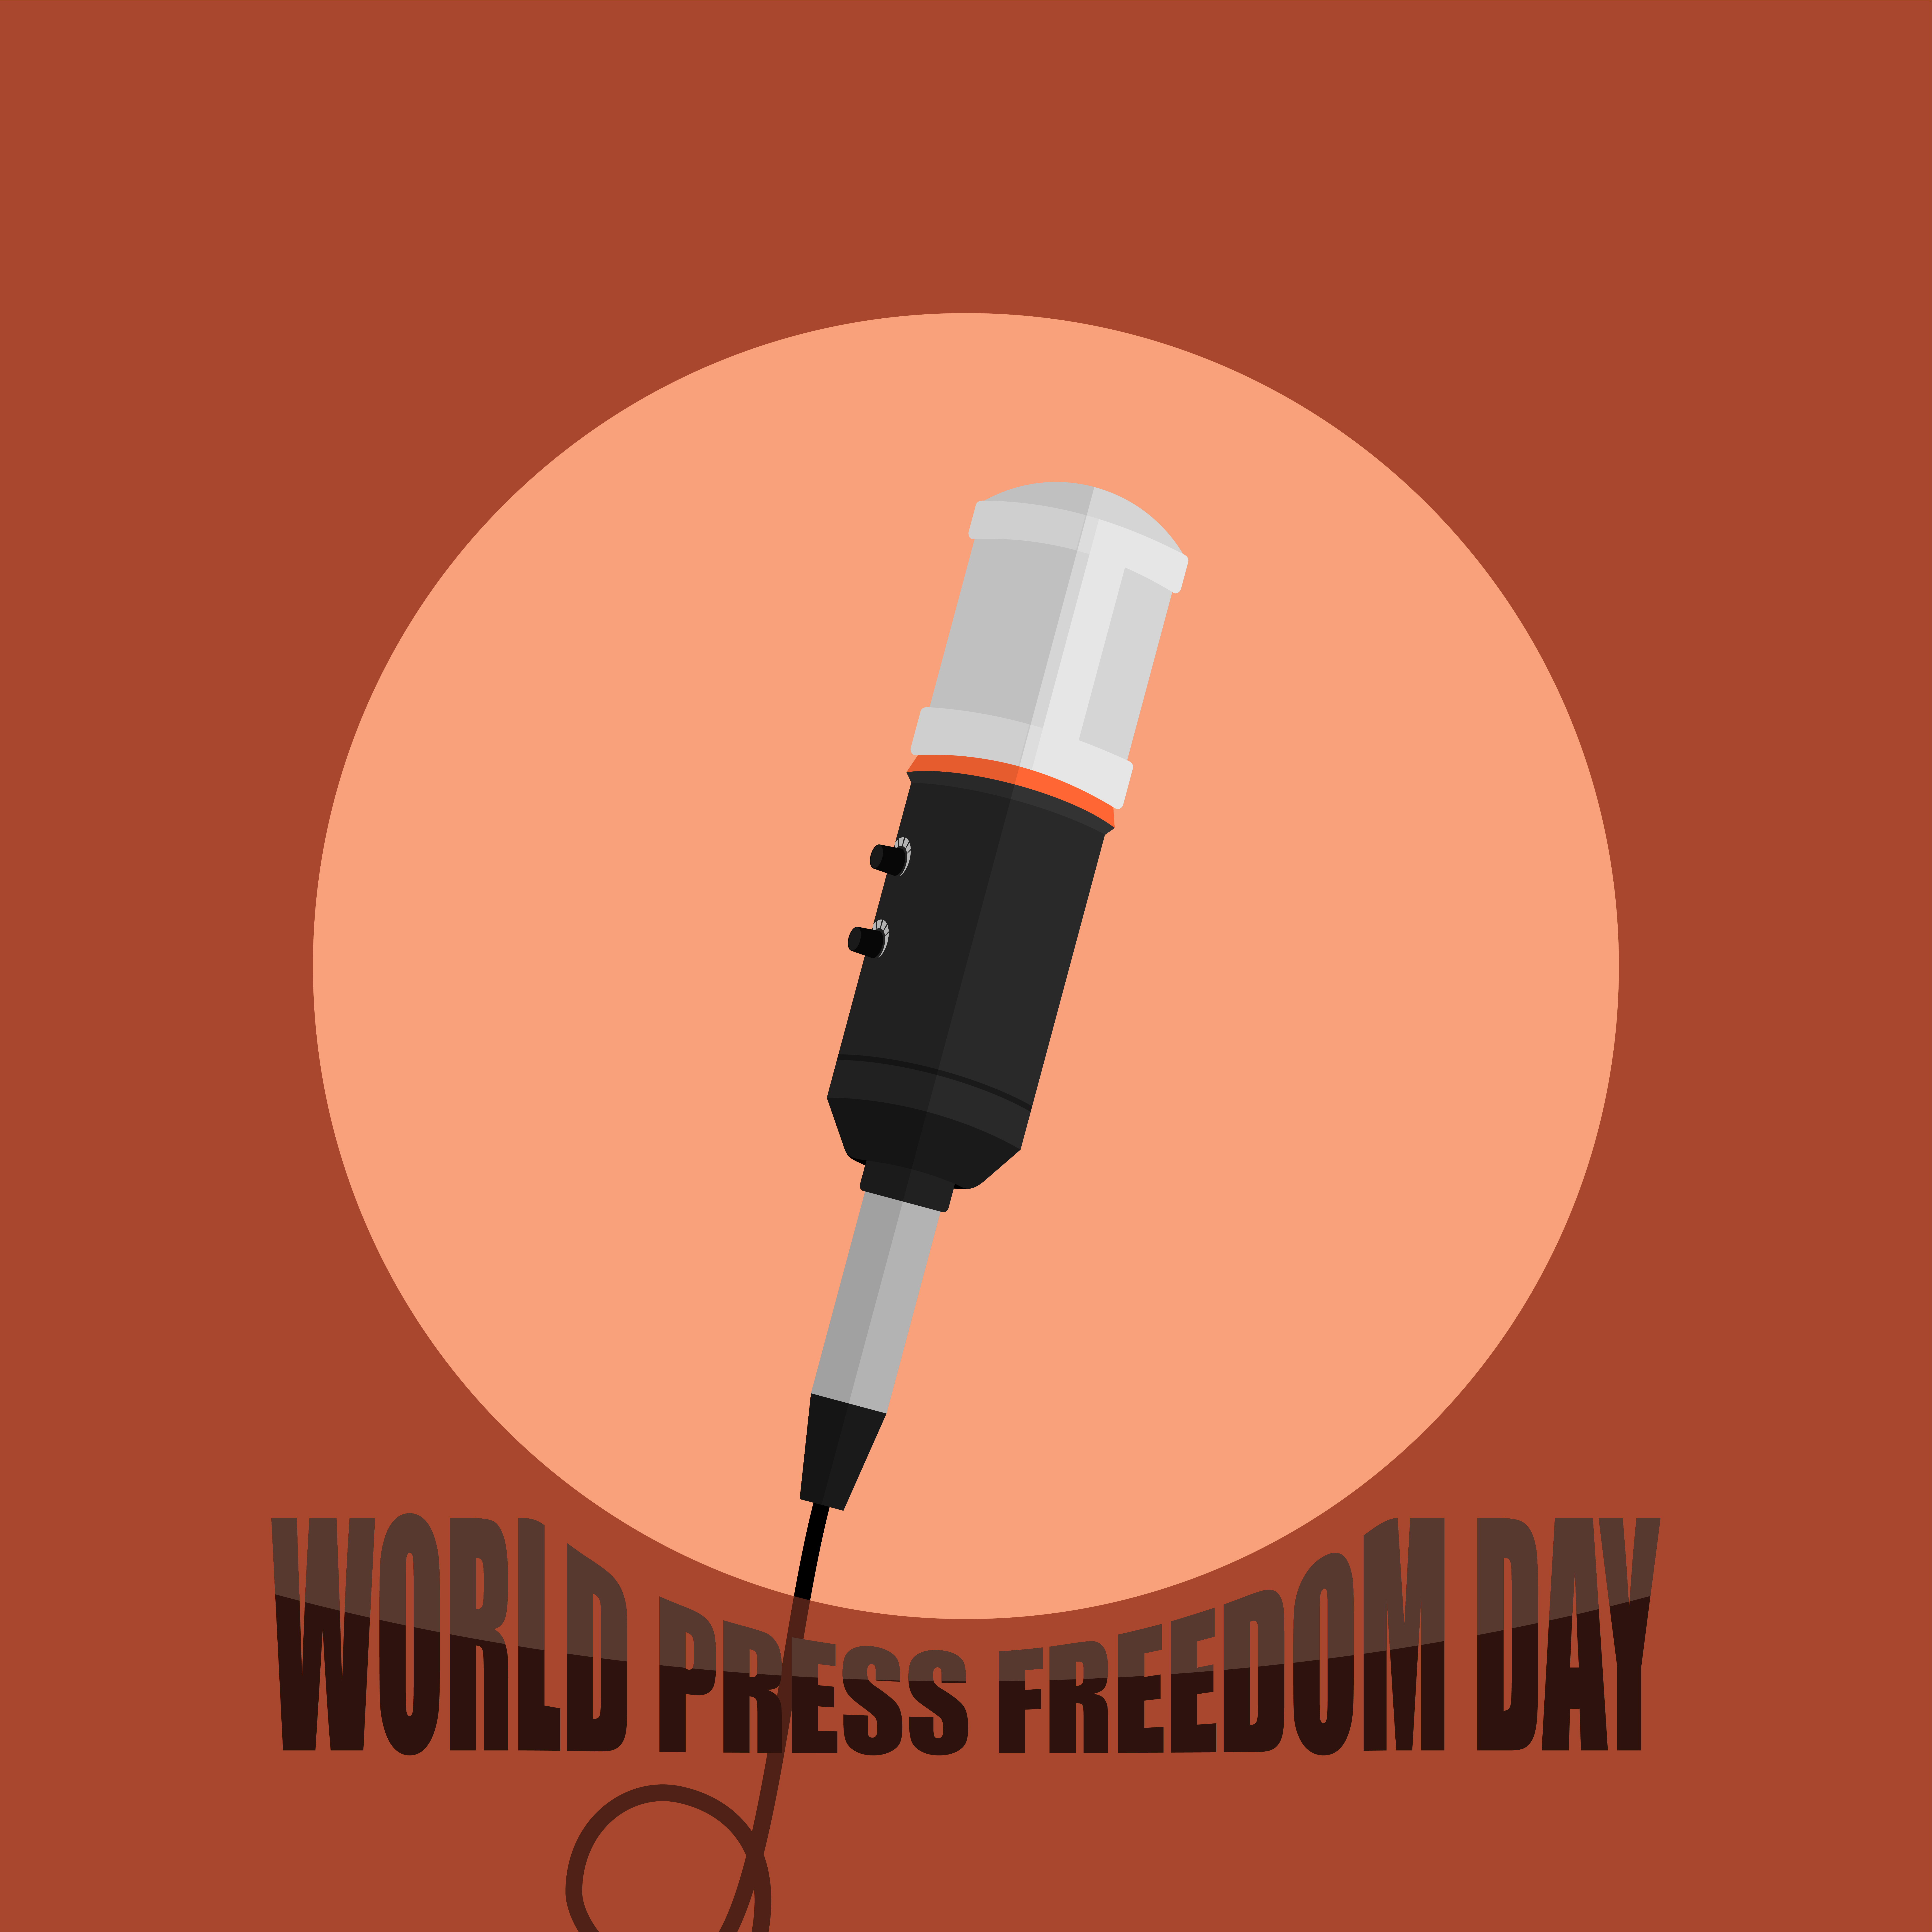 World Press Freedom Day Poster with Microphone - Download ...